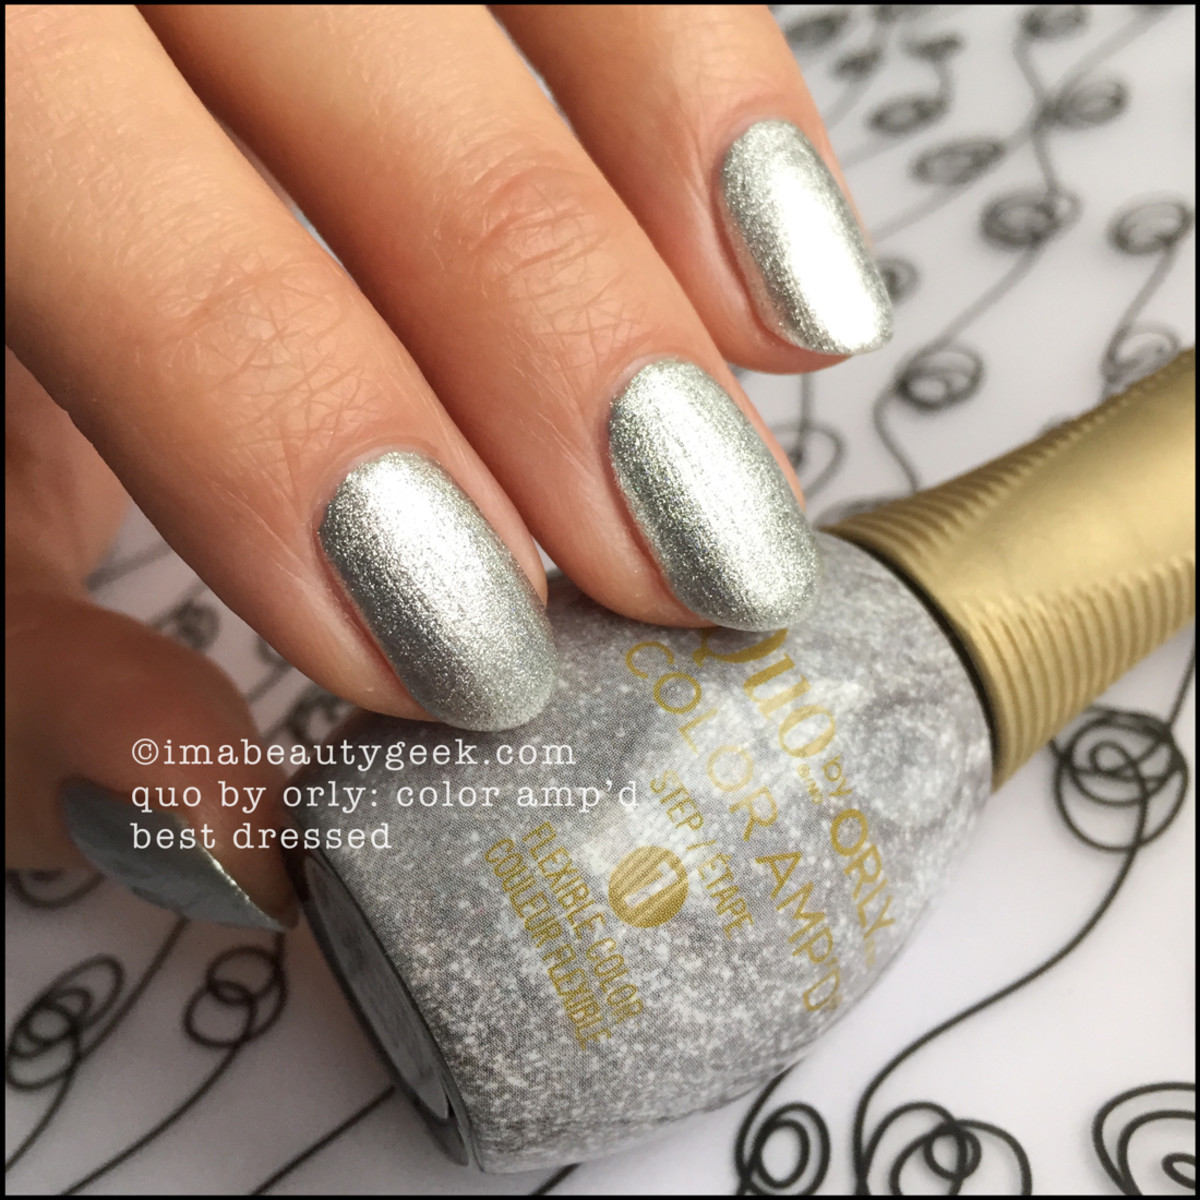 Quo Color Ampd Best Dressed_Orly Epix Silver Screen Swatch